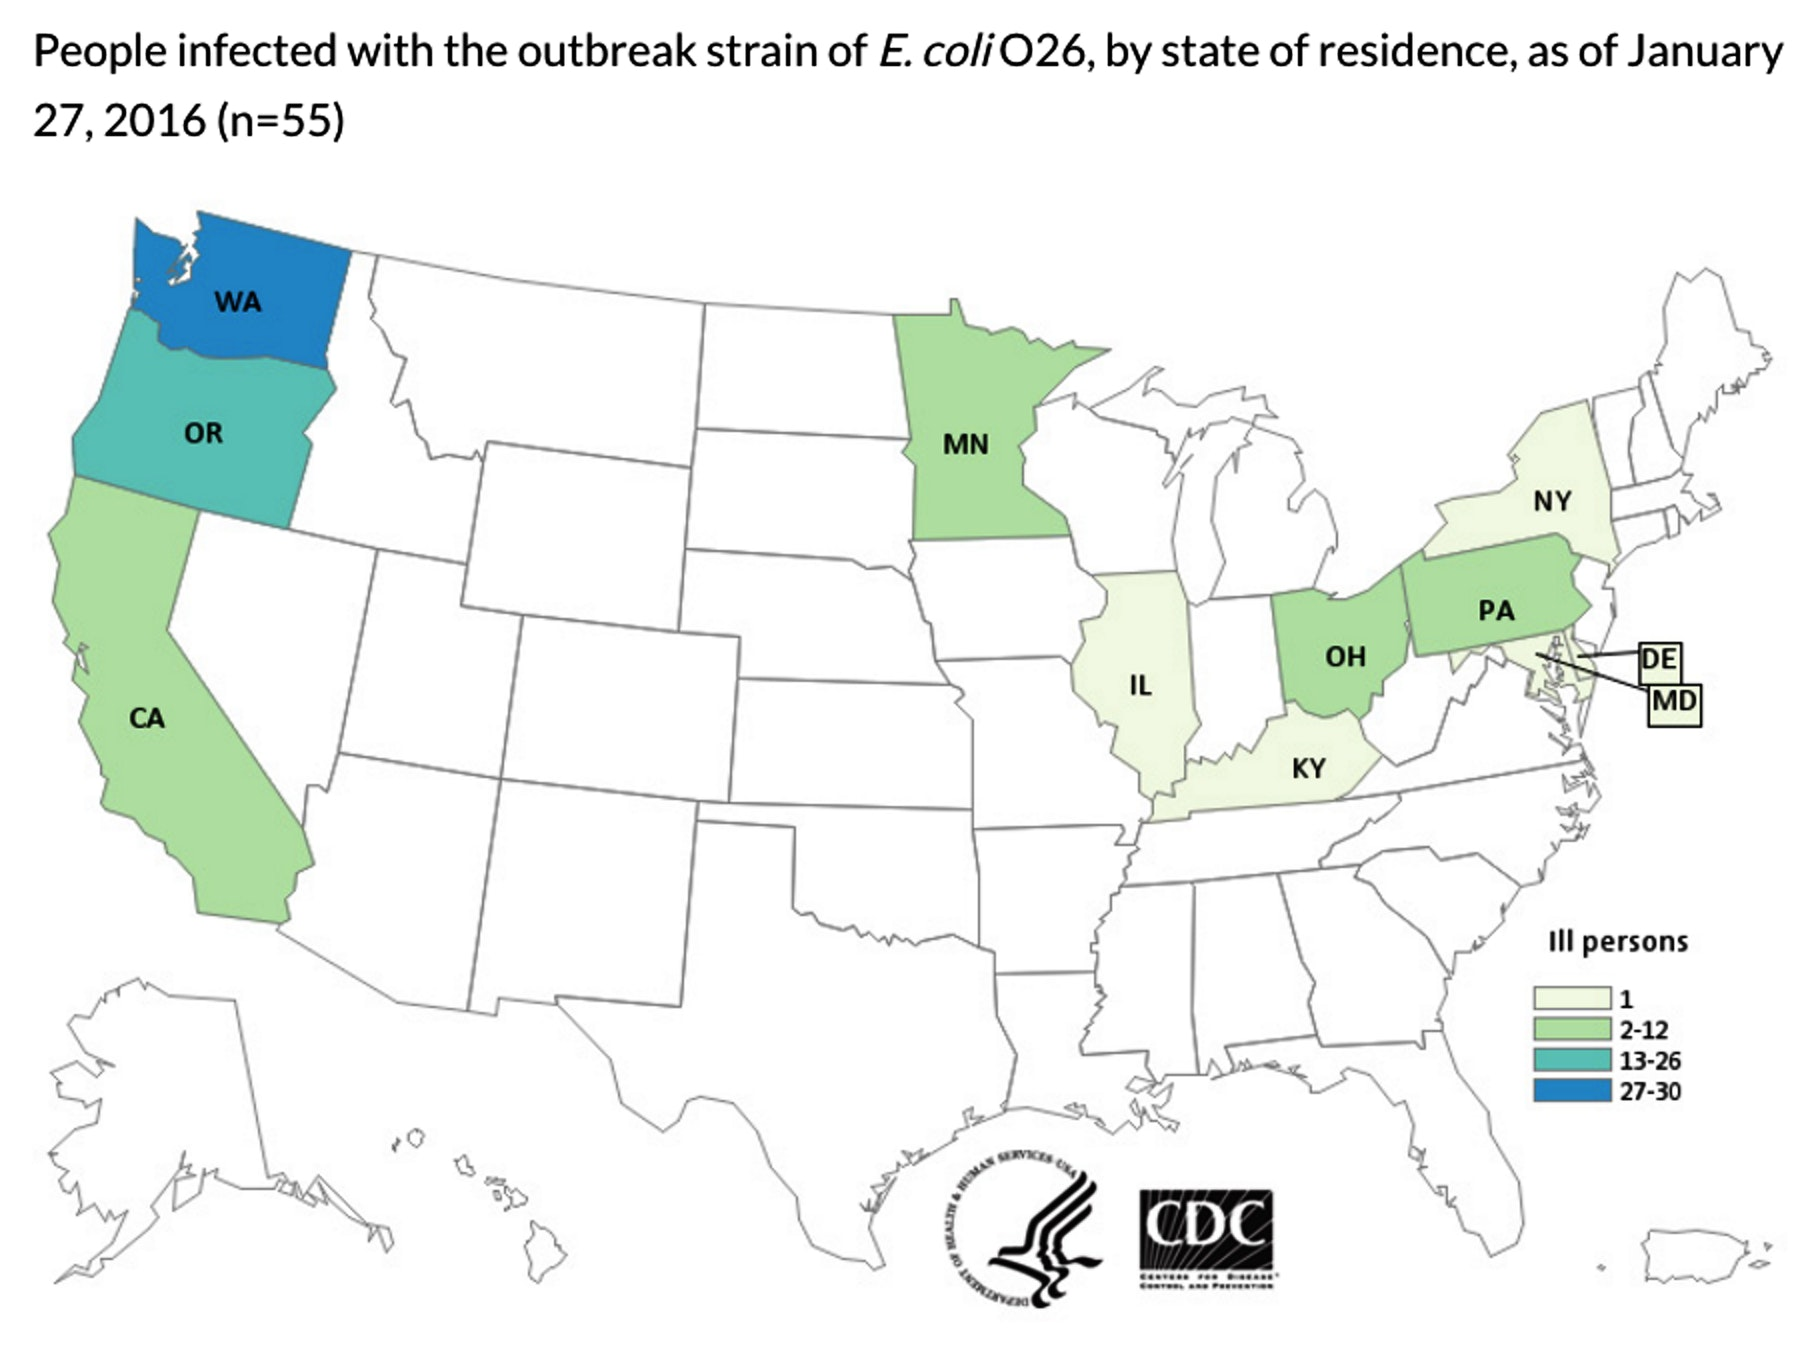 People infected with the outbreak strain of E. coli O26, by state of residence, as of January 27, 2016.